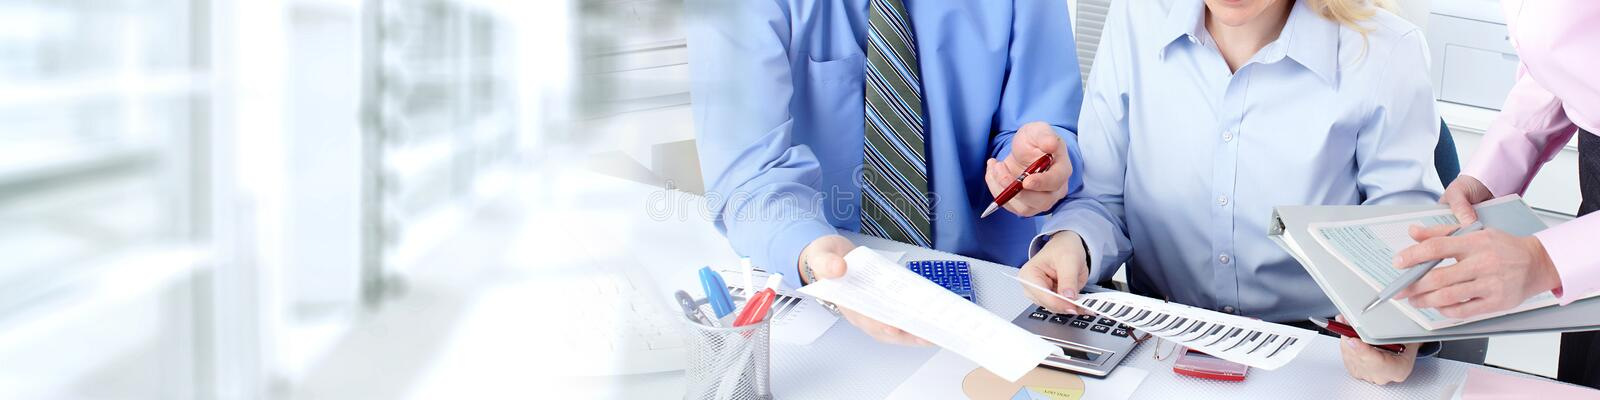 Business team. Hands of business people group working in office stock photo